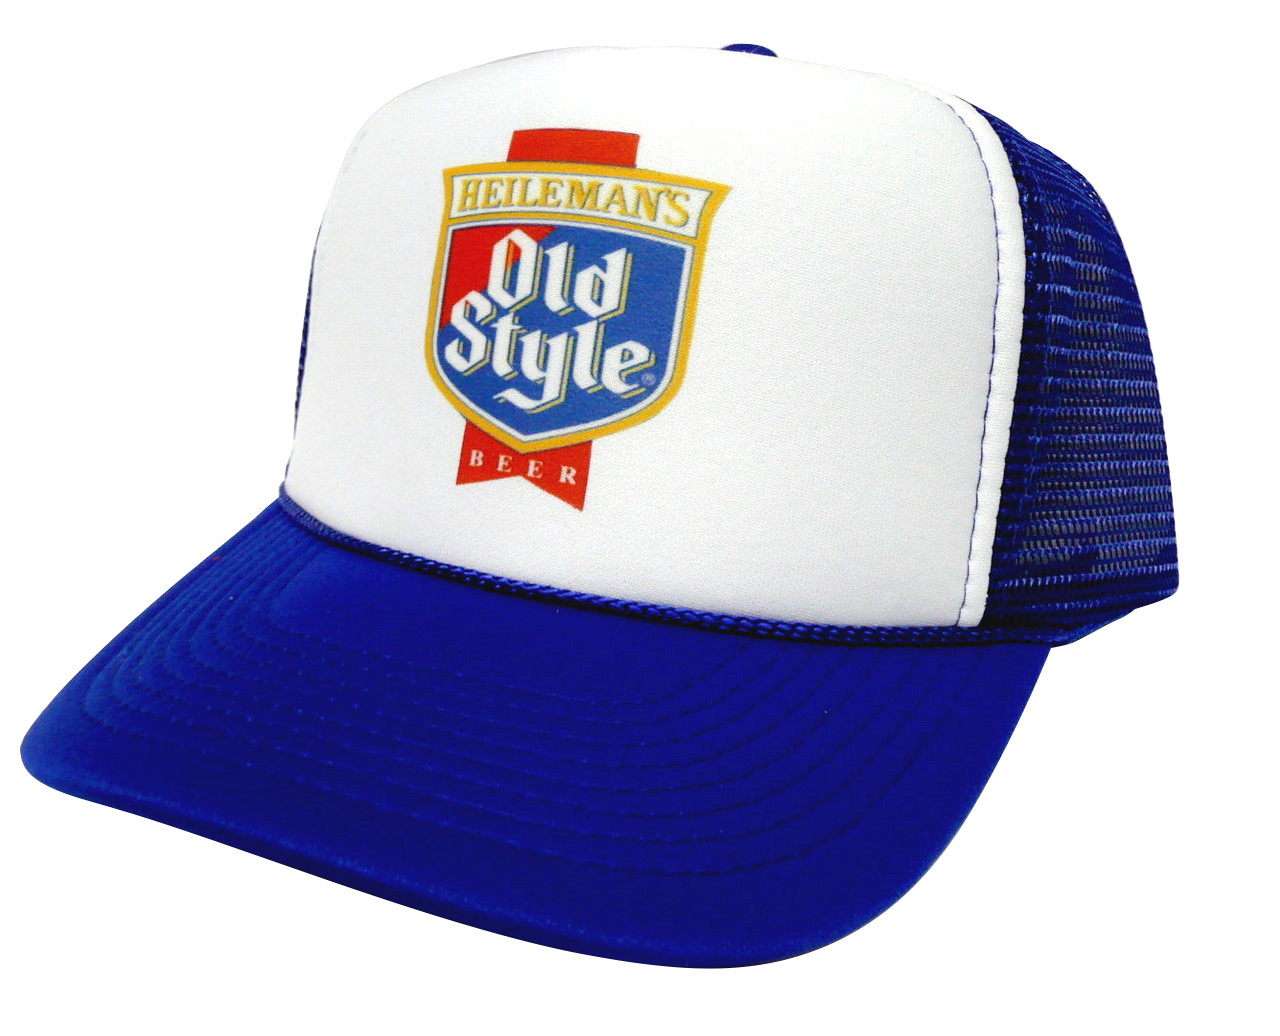 6161564f84a31 Old Style Beer Hat